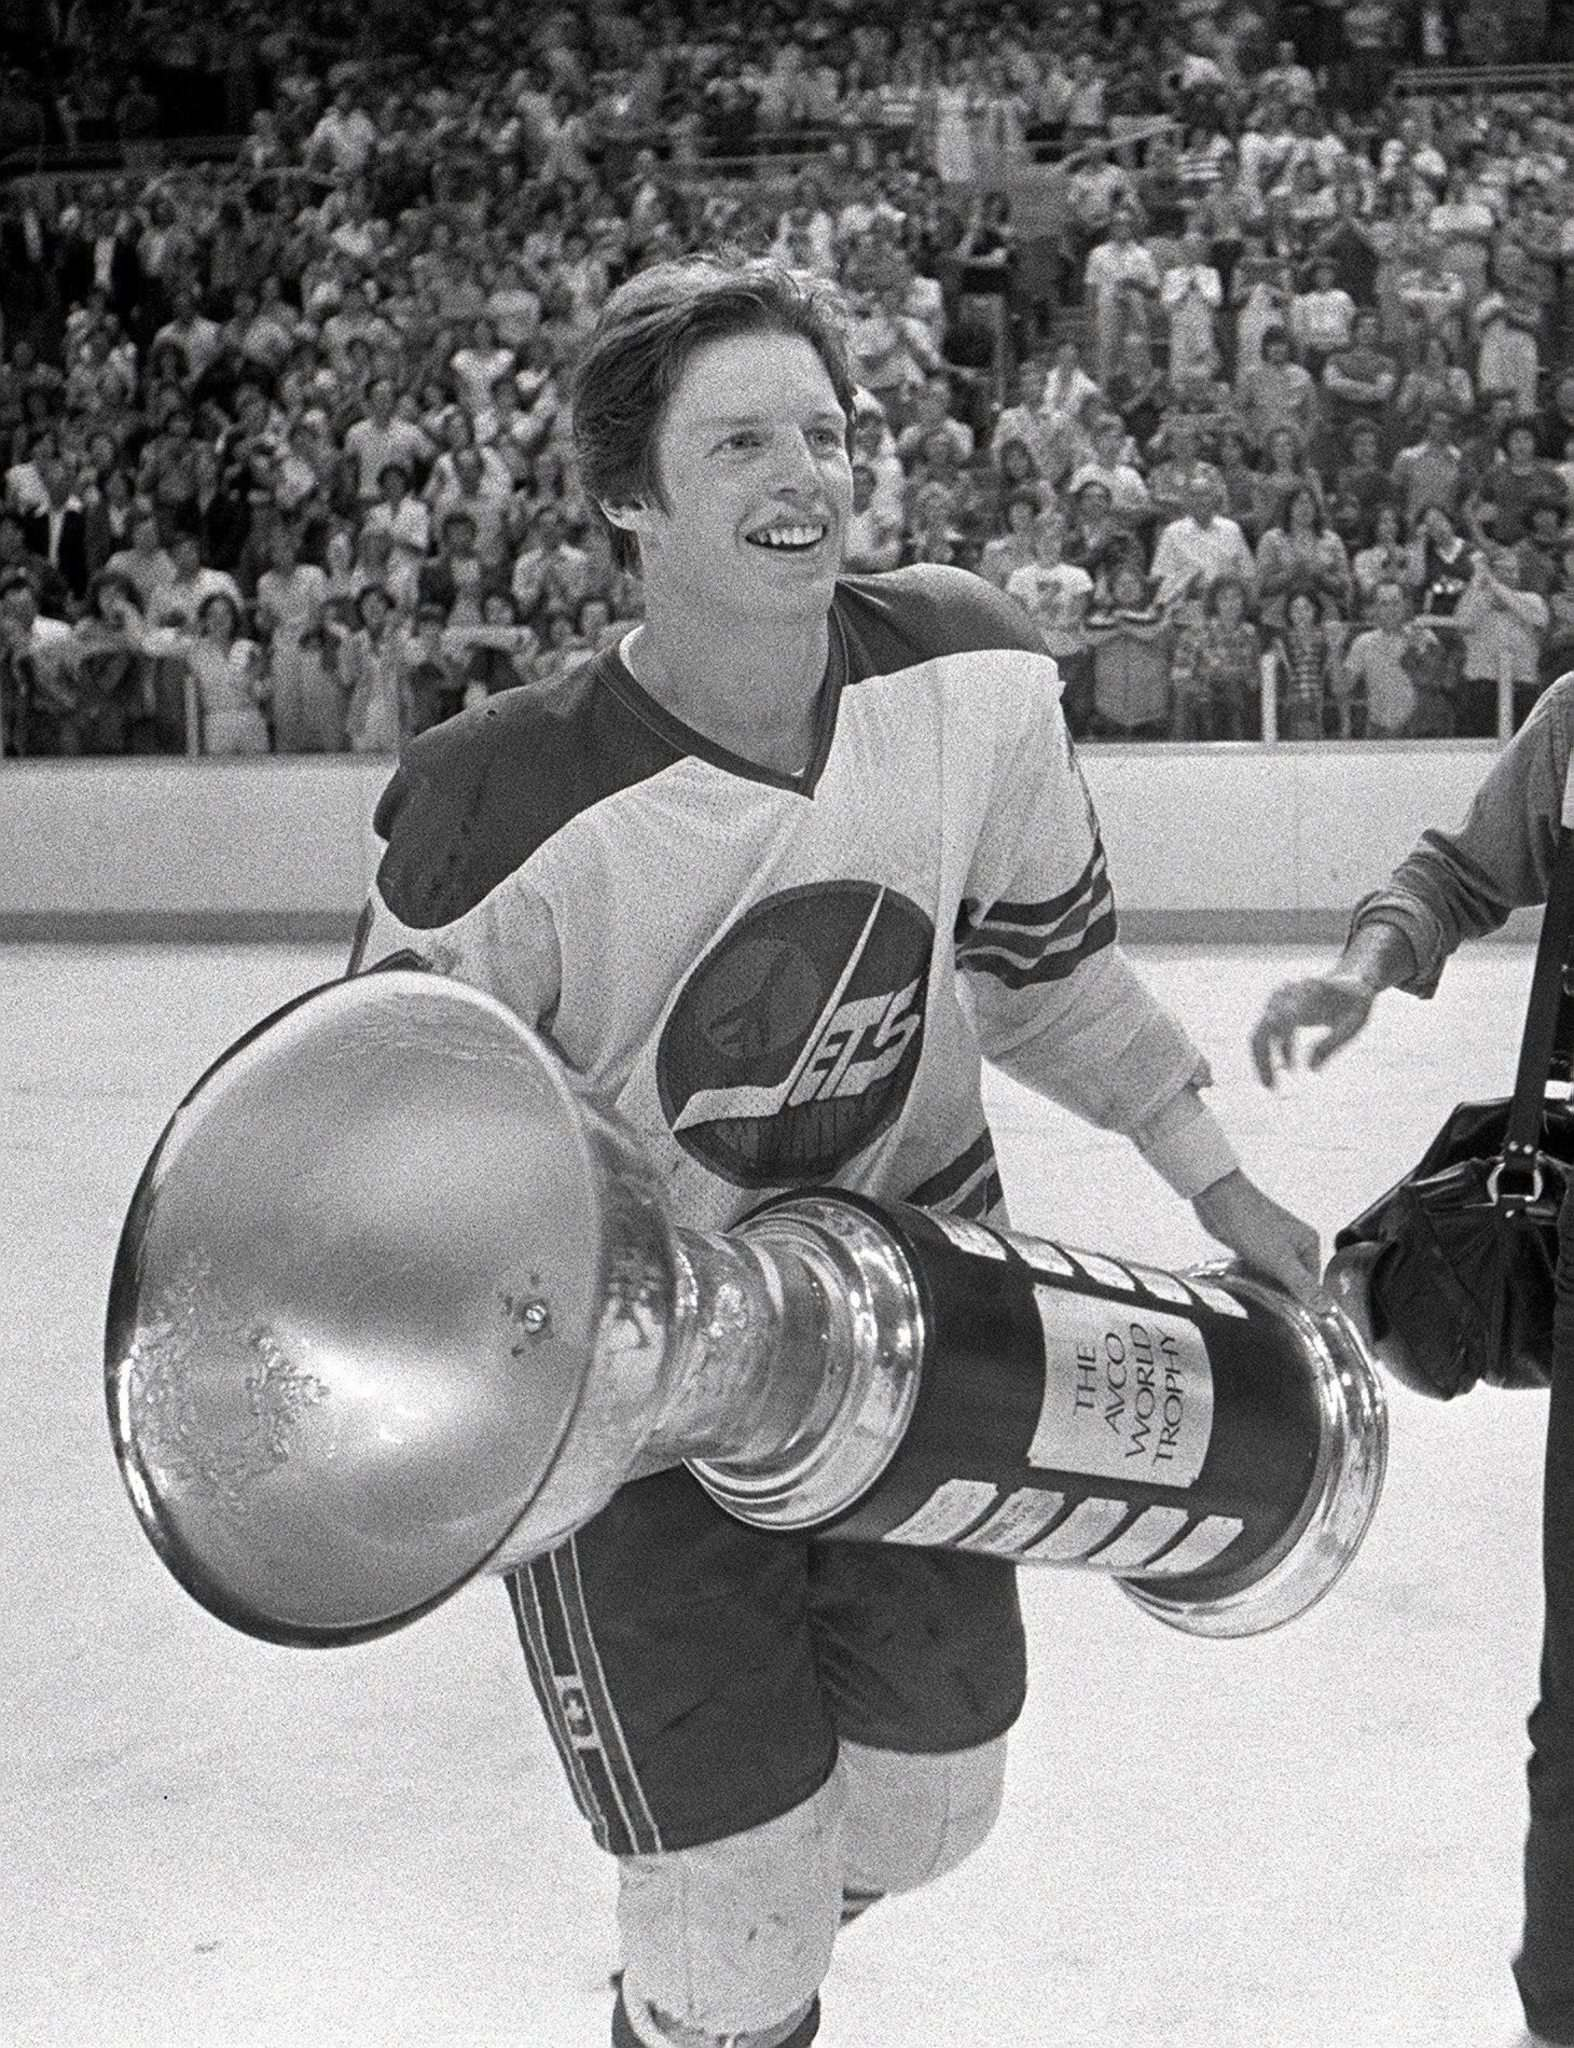 JON THORDARSON / WINNIPEG FREE PRESS / WINNIPEG TRIBUNE FILES</p><p>Ulf Nilsson, who led the Jets with 126 points in 1978, with the Avco Cup.</p>